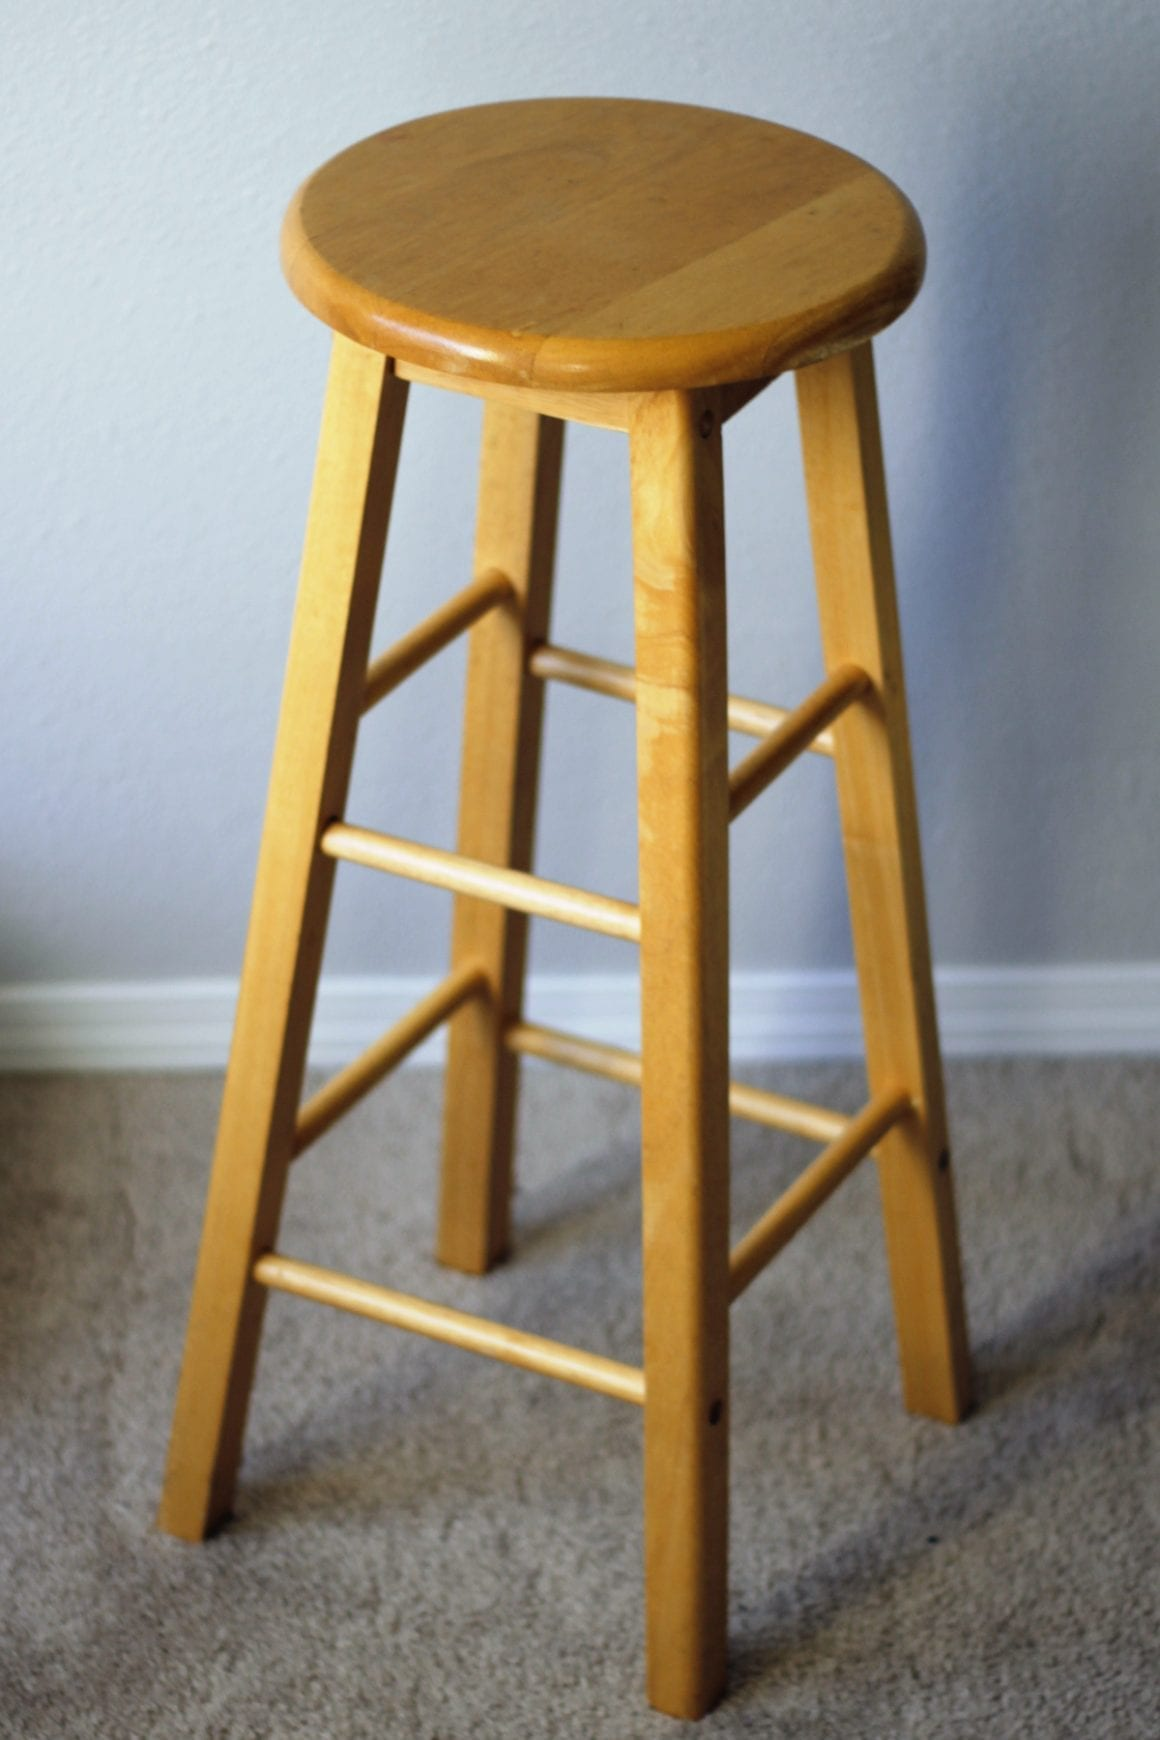 Plain wooden bar stool DIY bar stools  image.